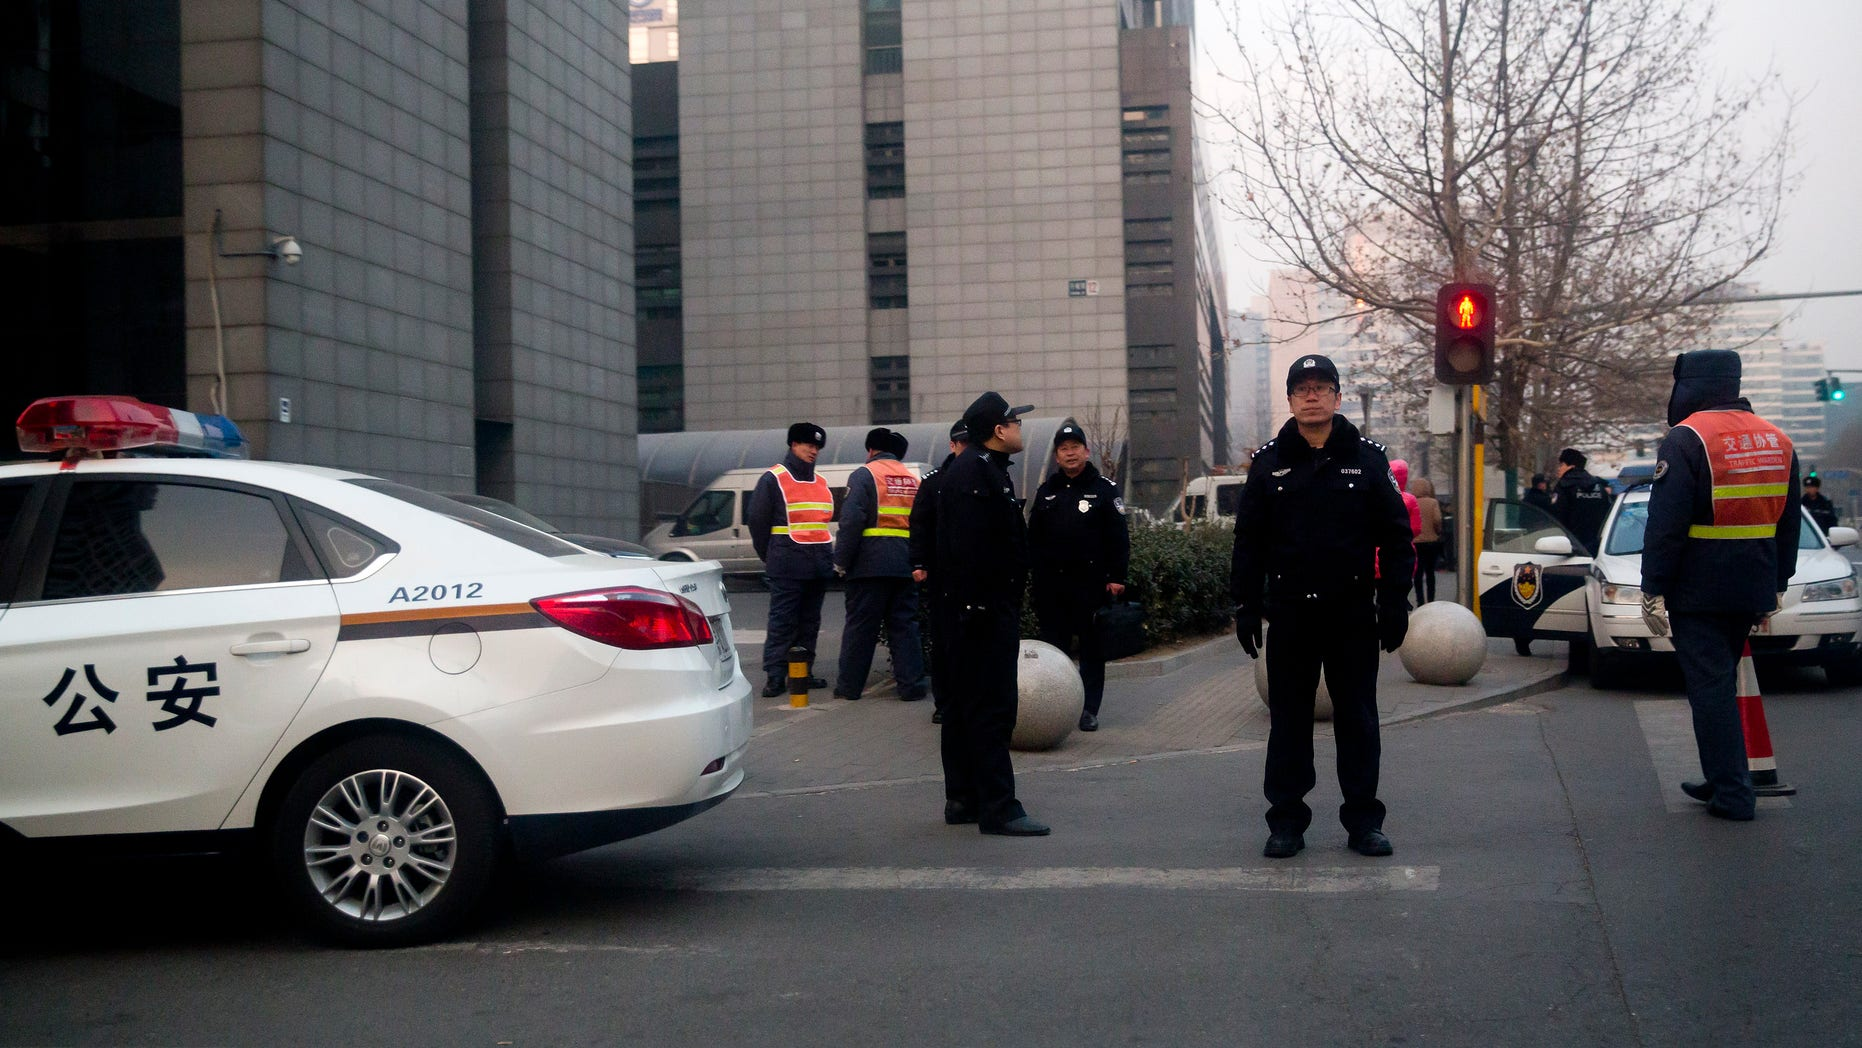 Chinese policemen stand guard as they condone off streets near the Haidian District Court, where Zhao Changqing, an activist of the New Citizens movement, was to stand trial in Beijing Thursday, Jan. 23, 2014. China's authorities and state media highlighted a prominent businessman's renunciation of ties to the grassroots social movement that he had financed and his alleged suggestion that the movement's founder Xu Zhiyong should confess to crimes on Thursday, while authorities are postponing several trials of members of the movement amid tight security. (AP Photo/Andy Wong)